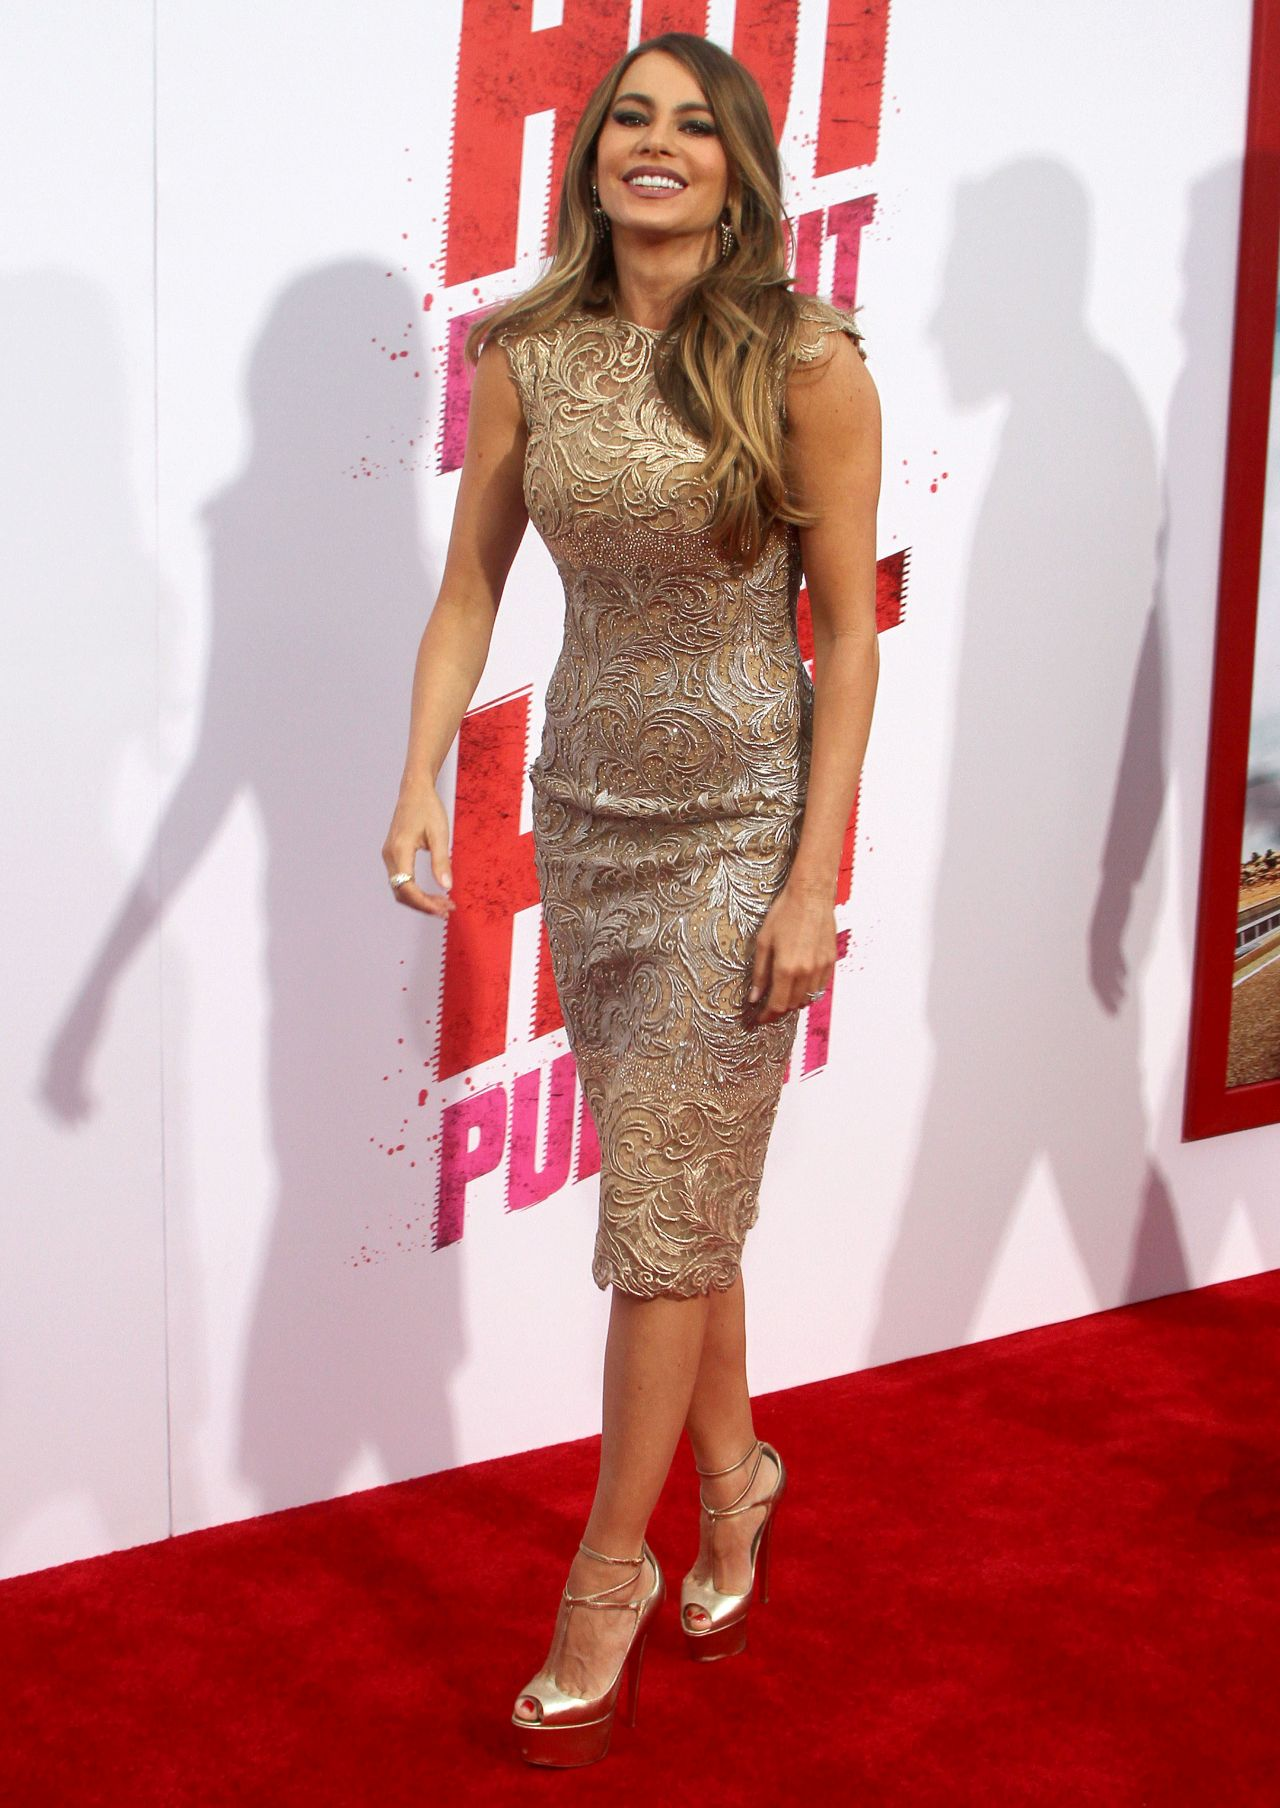 Sofia Vergara On Red Carpet Hot Pursuit Premiere In